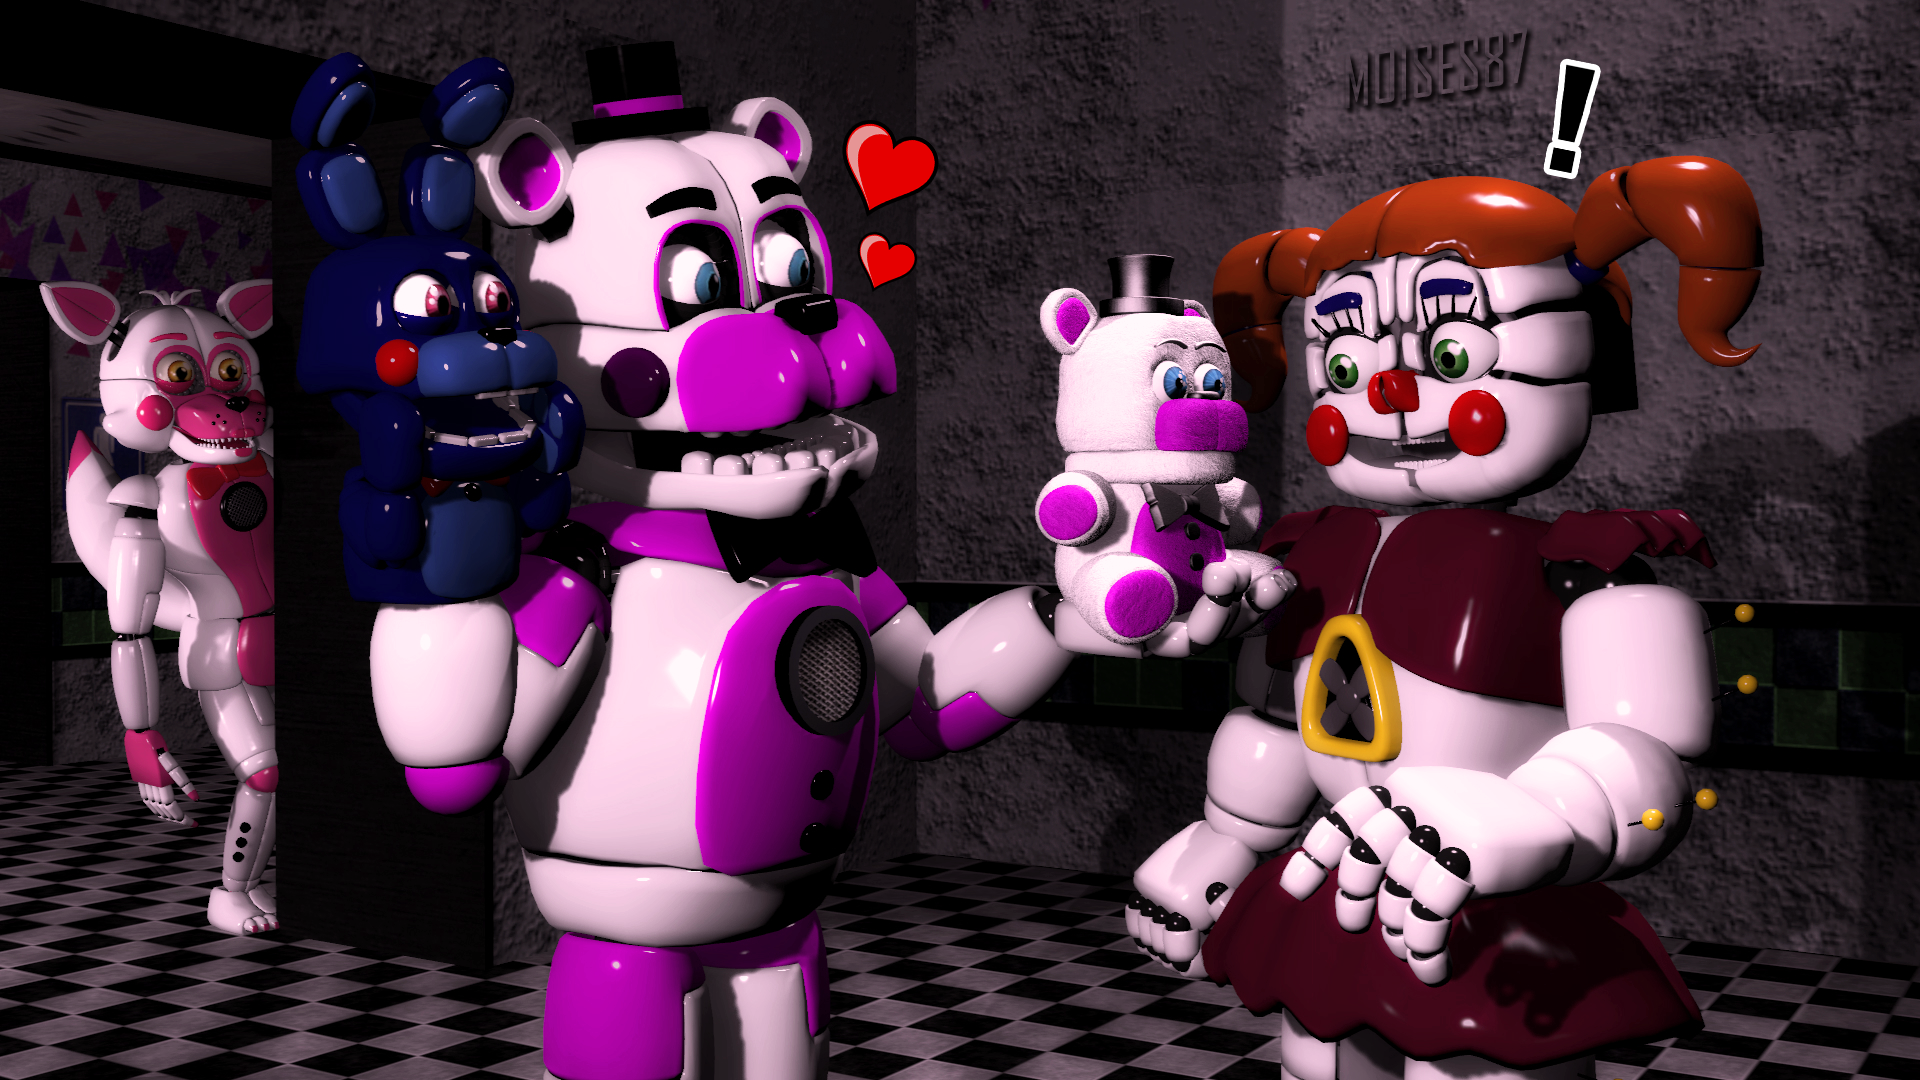 special gift funtime freddy x baby দ্বারা moises87 dabnjvy